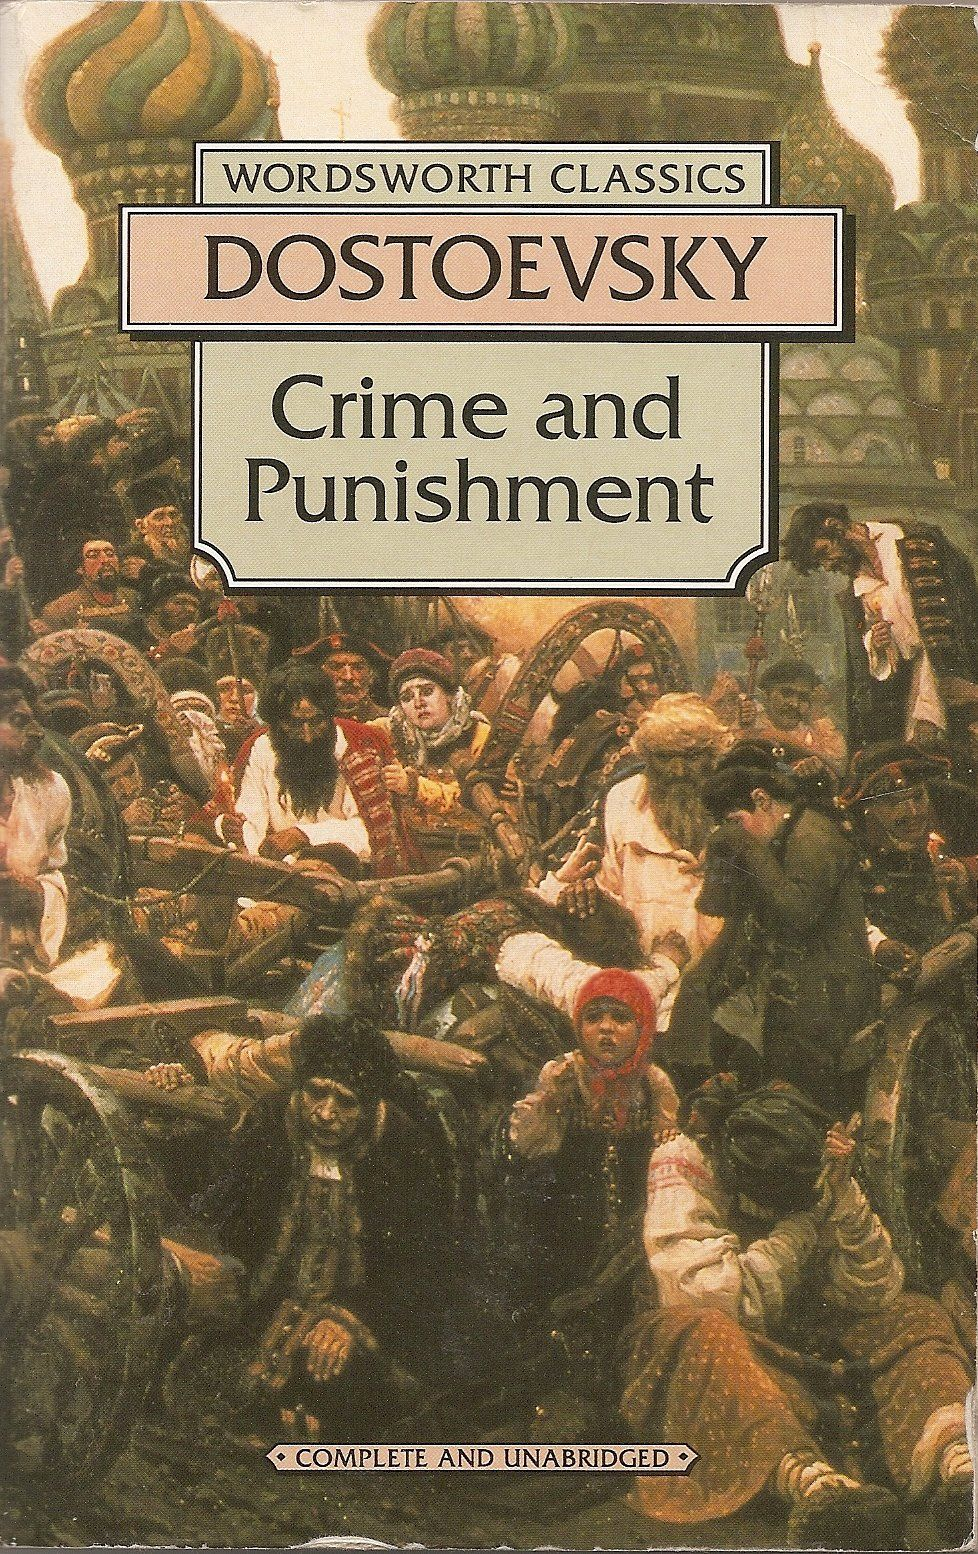 crime and punishment by fyodor dostoevsky books to read pinterest crime books and novels. Black Bedroom Furniture Sets. Home Design Ideas